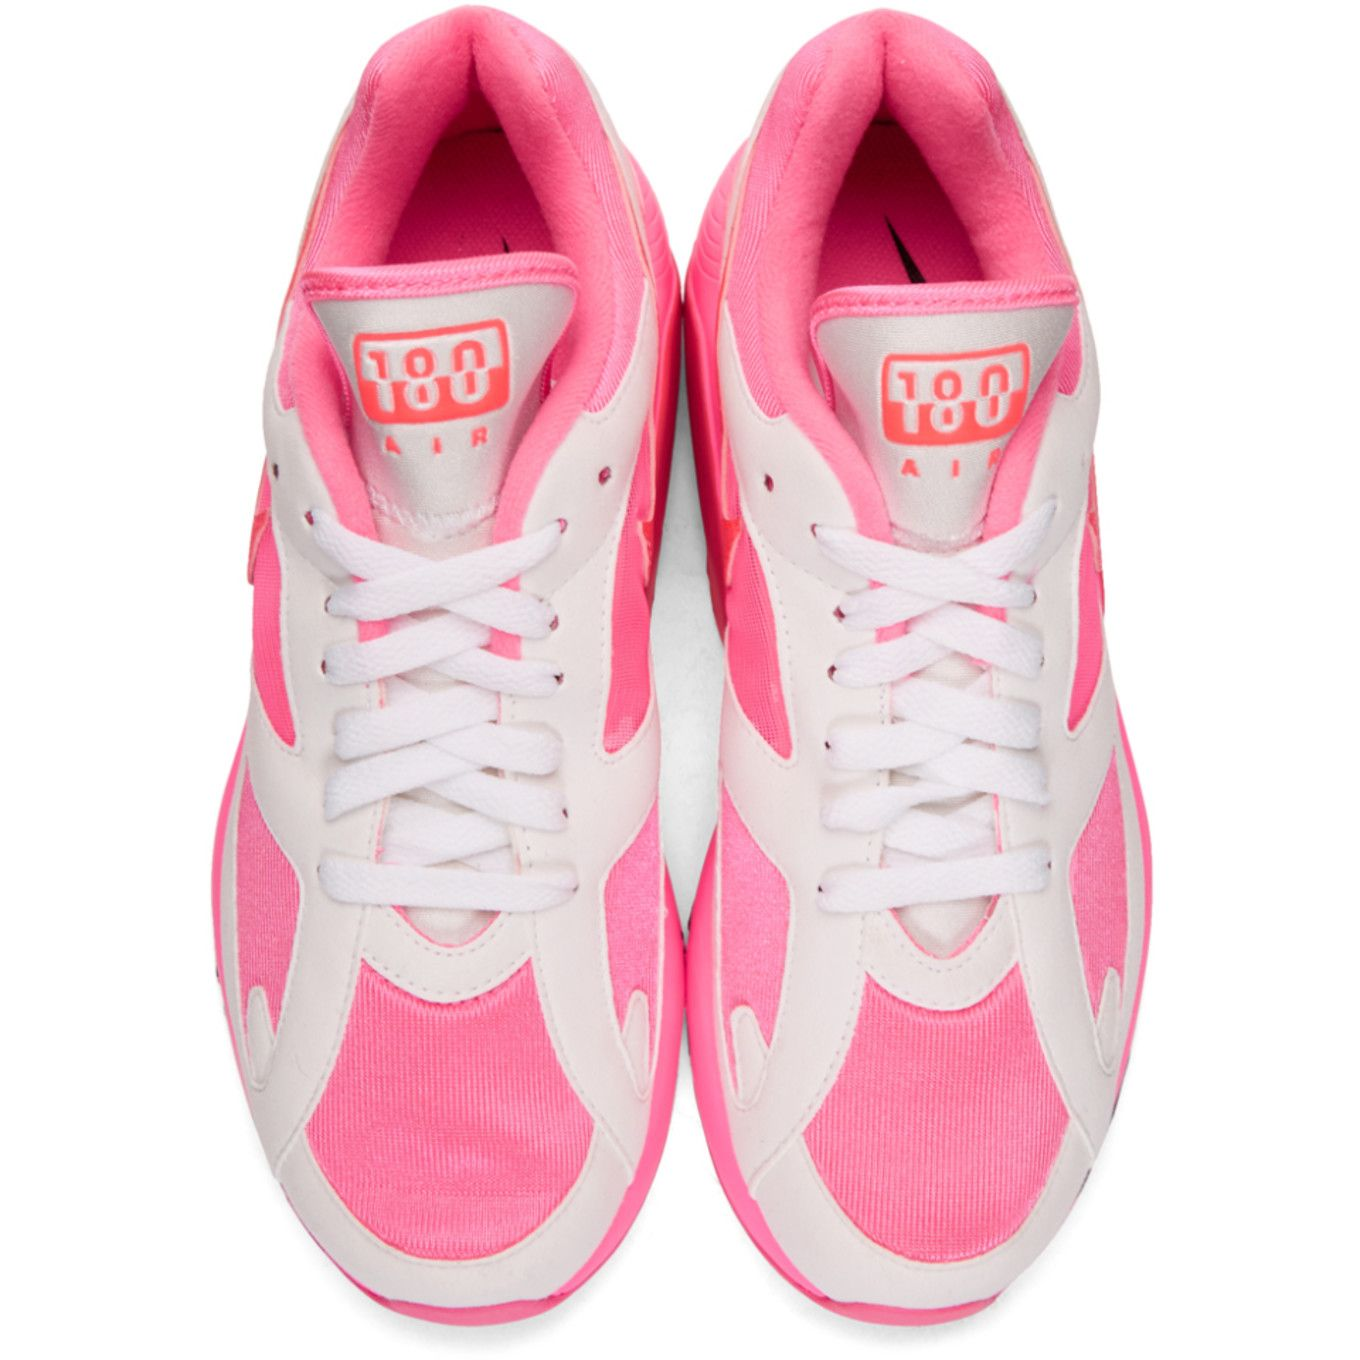 huge discount 18441 301f4 Comme des Garçons Homme Plus - White  Pink Nike Edition Air Max 180  Sneakers